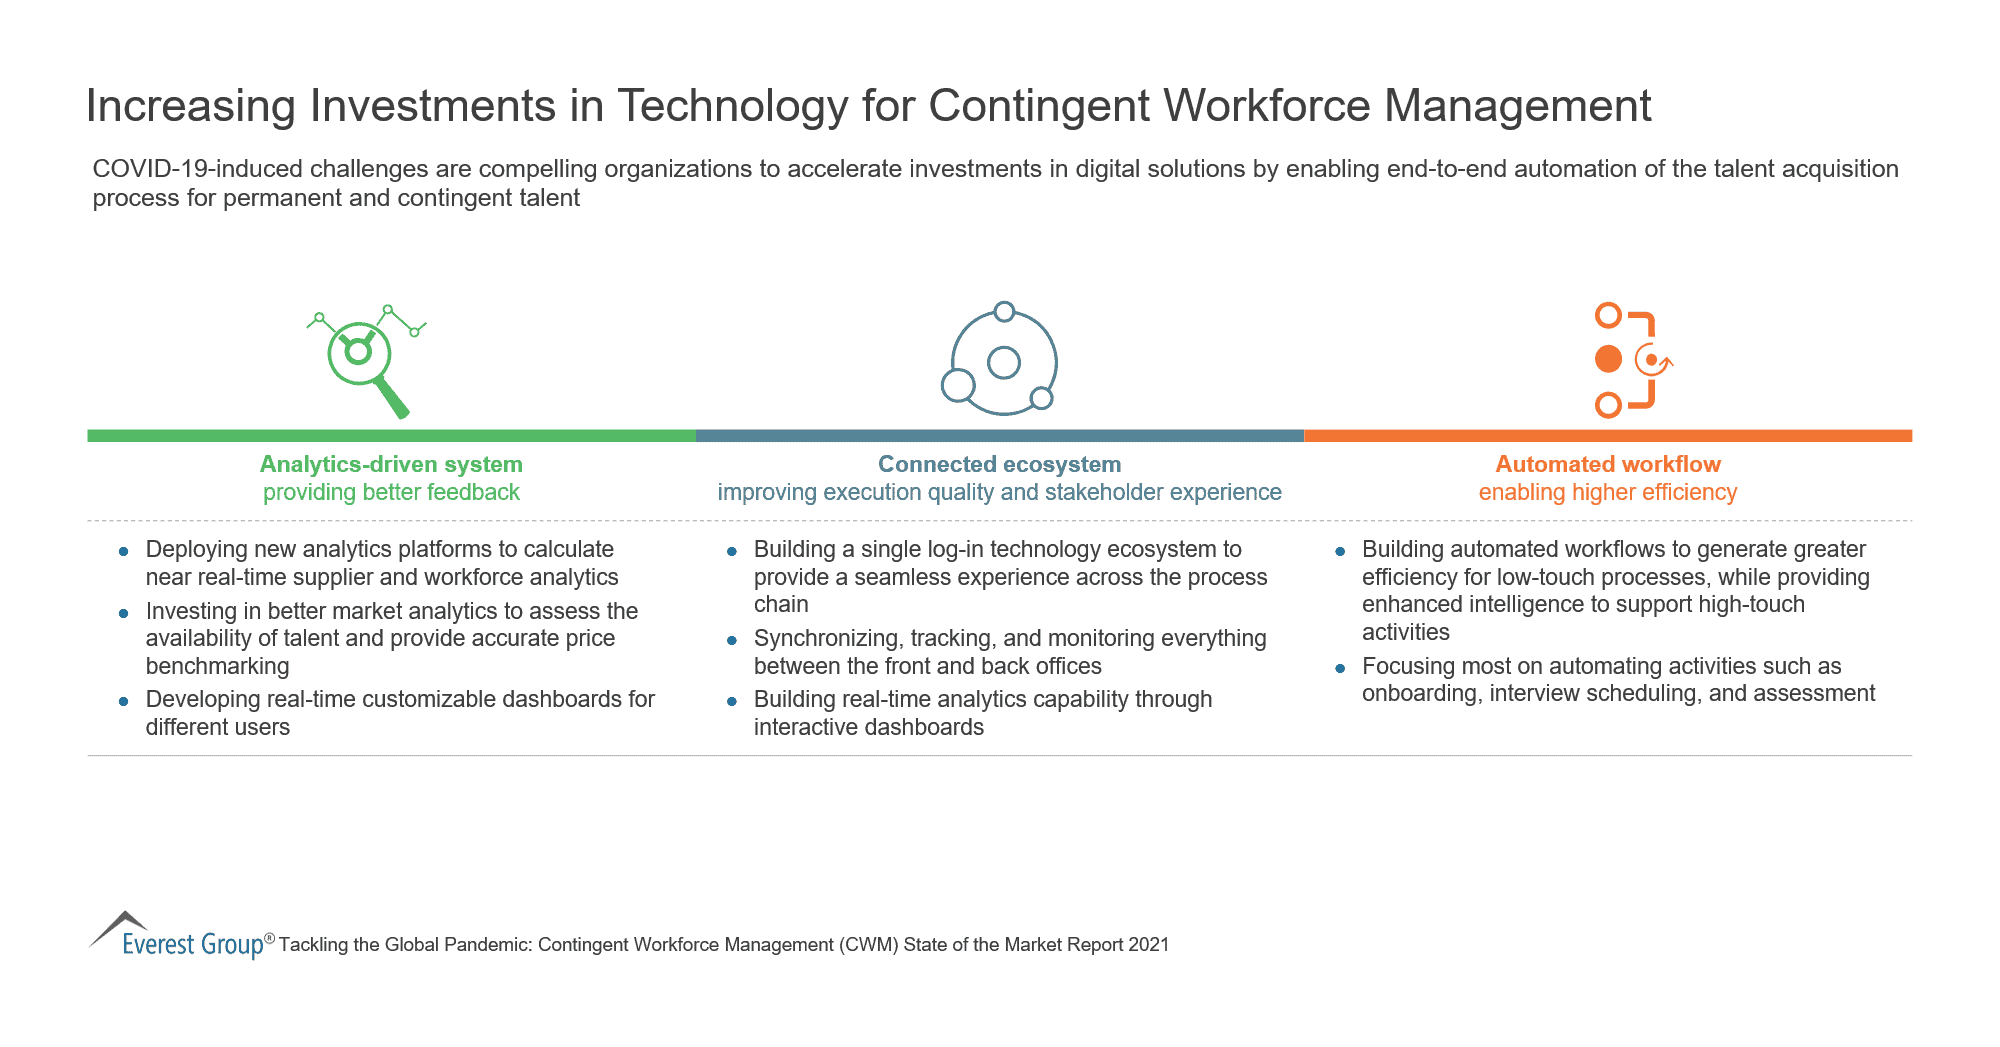 Increasing Investments in Technology for Contingent Workforce Management